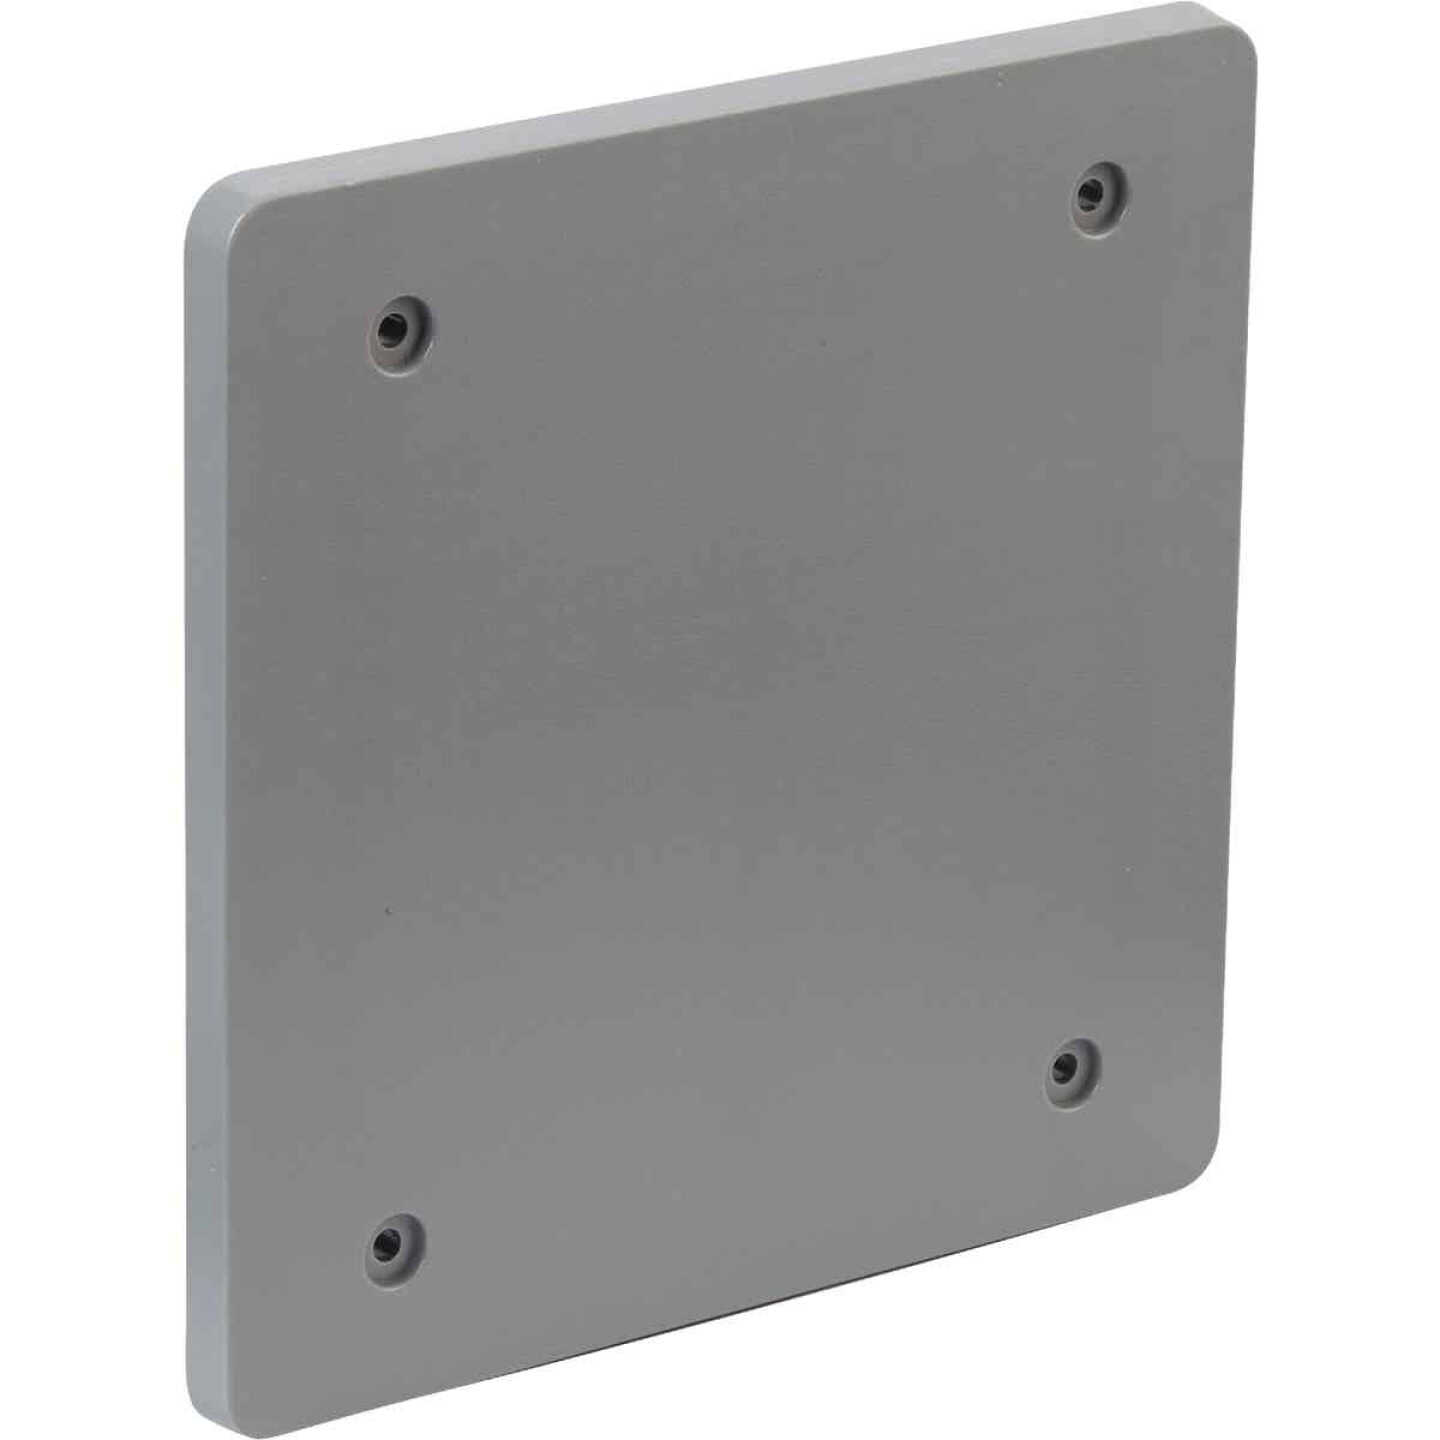 Bell 2-Gang Blank Square Polycarbonate Gray Weatherproof Outdoor Box Cover Image 3